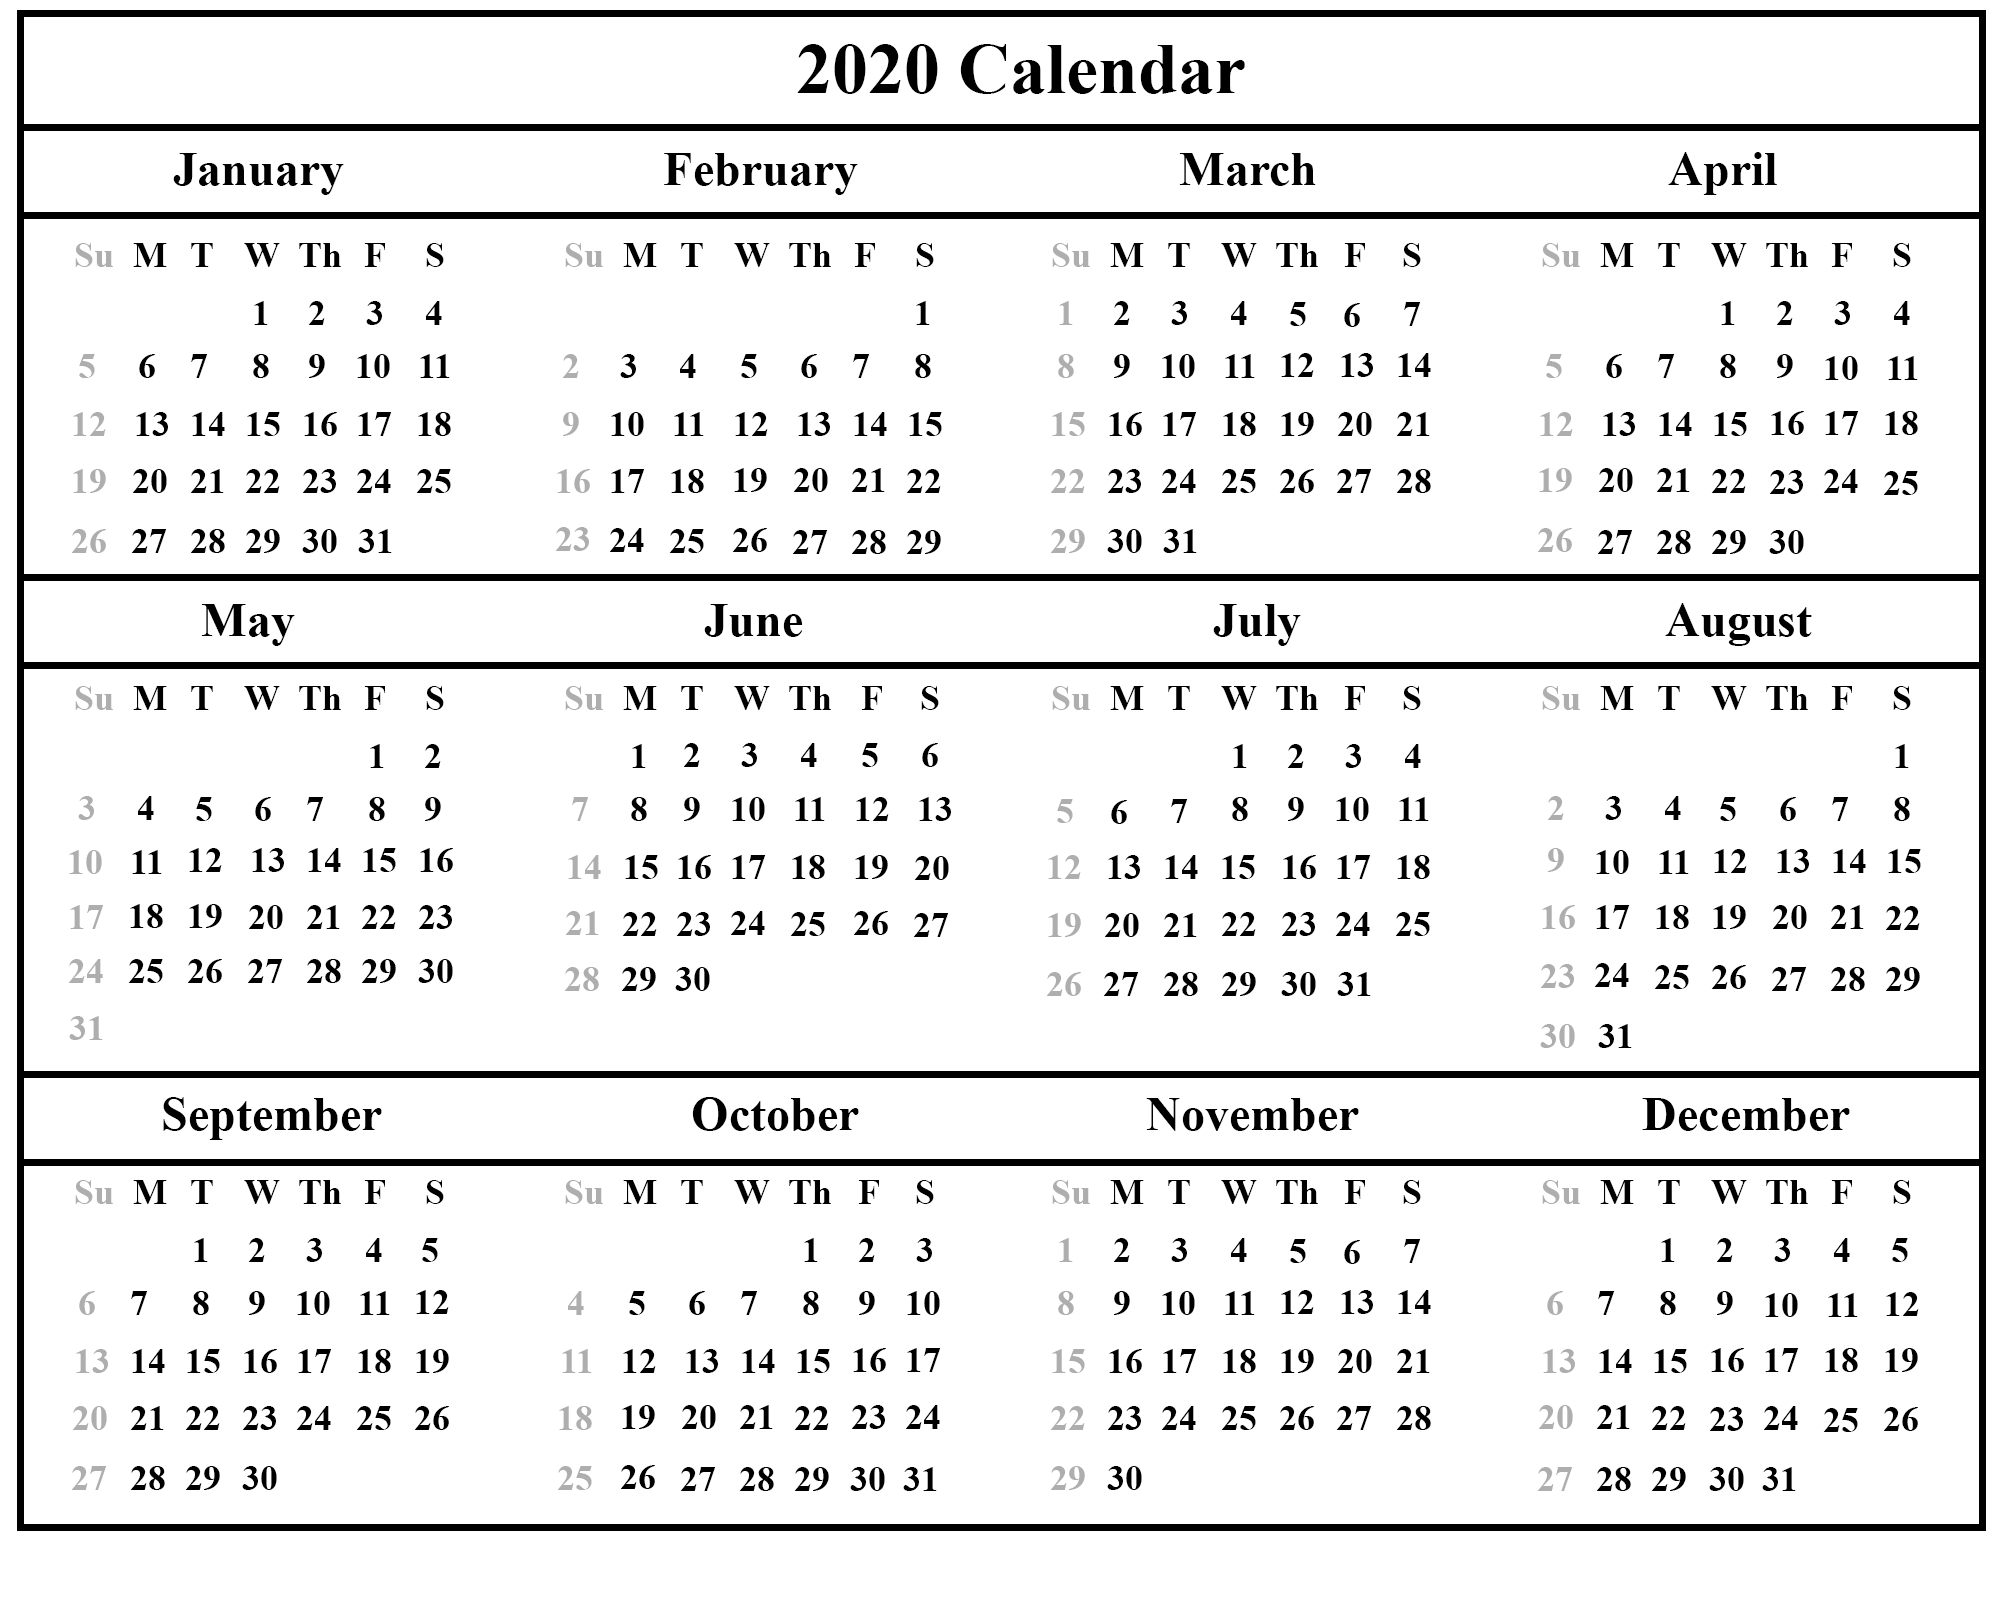 Nanakshahi Calendar 2020 January | Calendar Template Information inside Khalsa Heera Jantri 2020 January